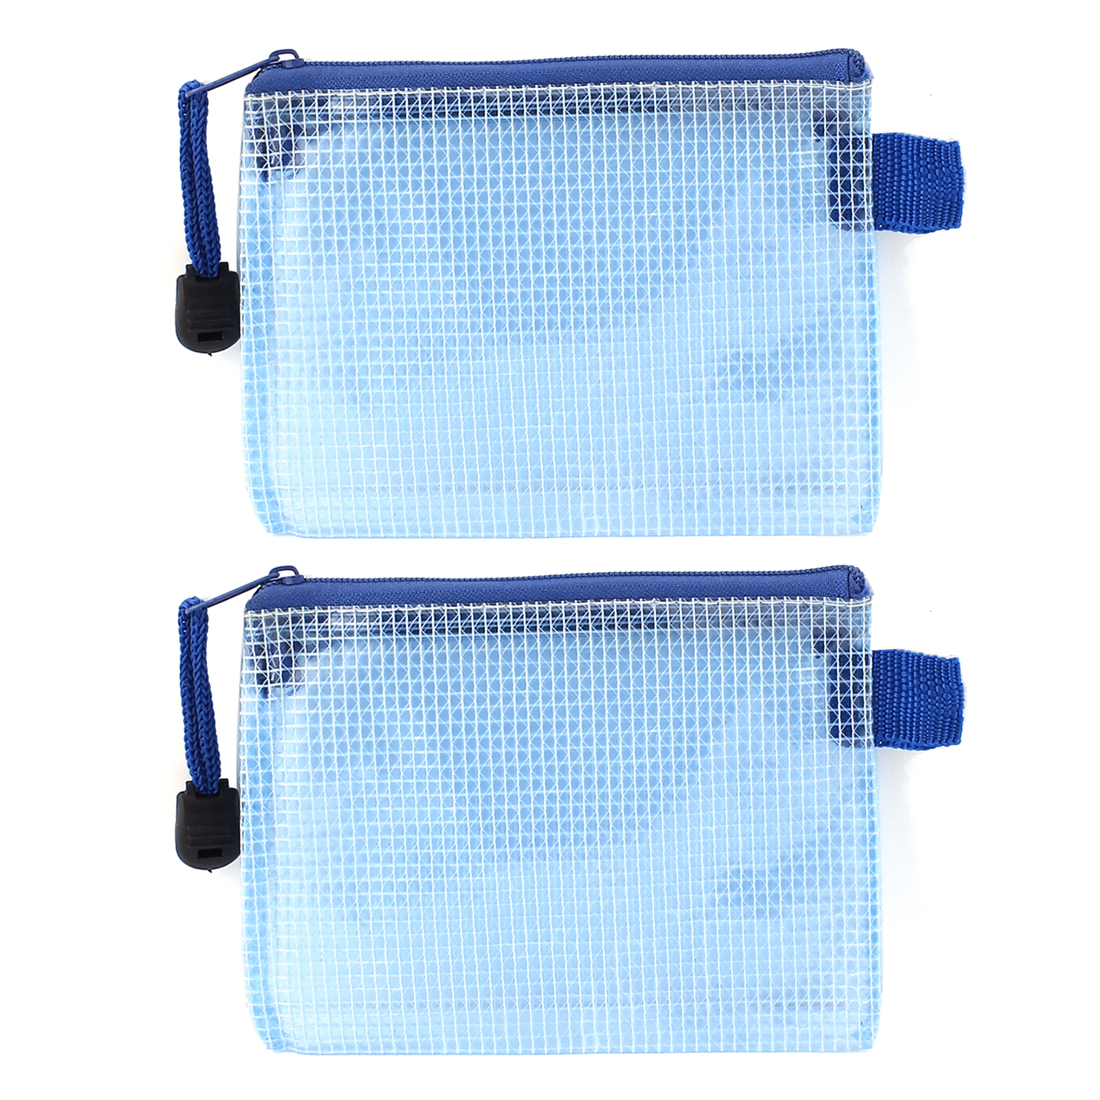 Note Paper Book Document Zipper Bag Holder Case Blue 2Pcs